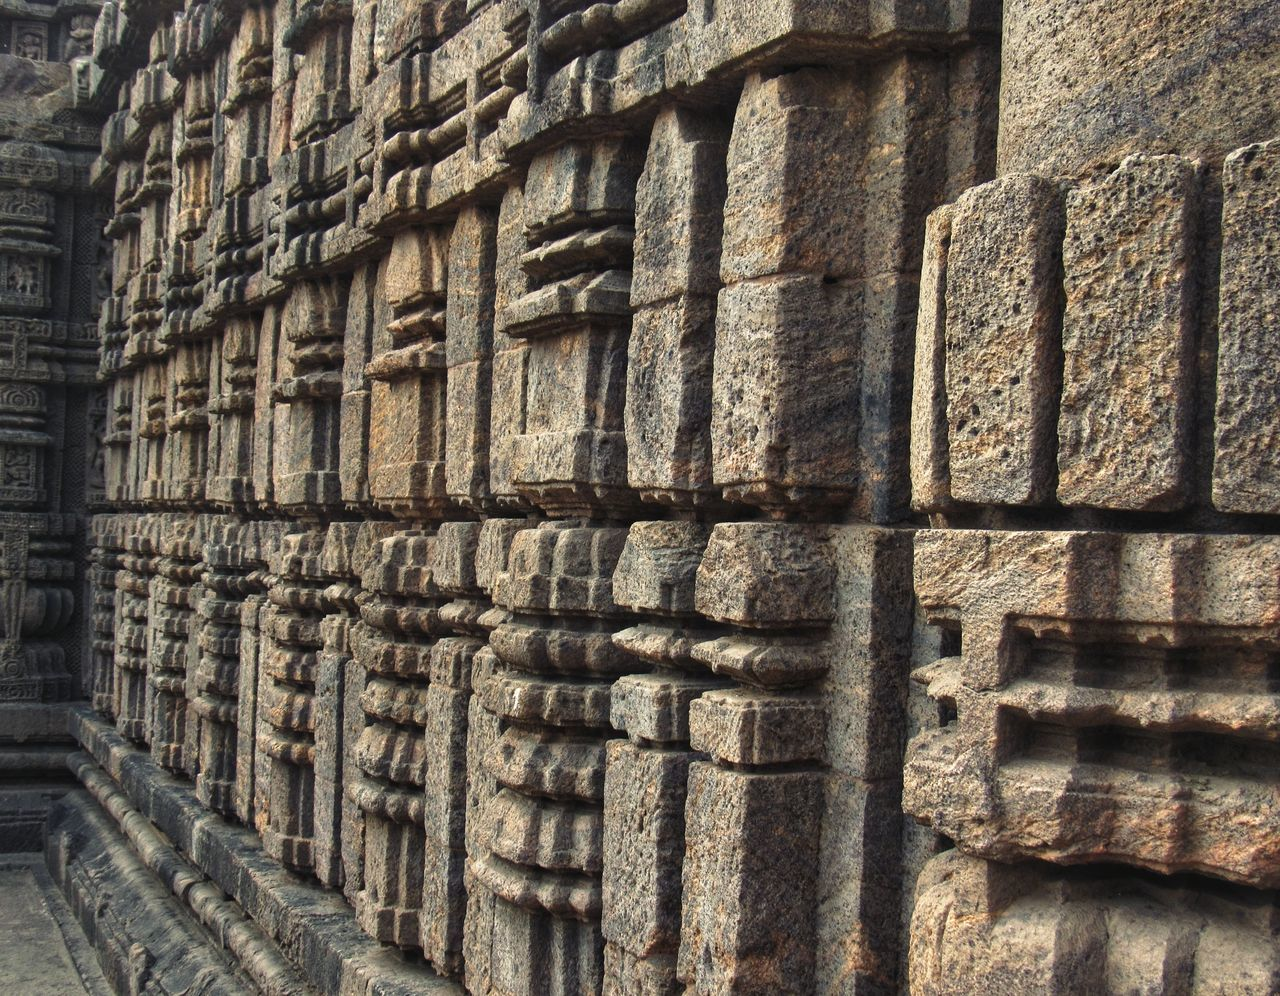 Konark Sun Temple KONARK TEMPLE Konark Sun Temple Konark Backgrounds Full Frame Pattern Close-up Architecture Block Arrangement Low Angle Architectural Detail Textured  LINE In A Row Side By Side